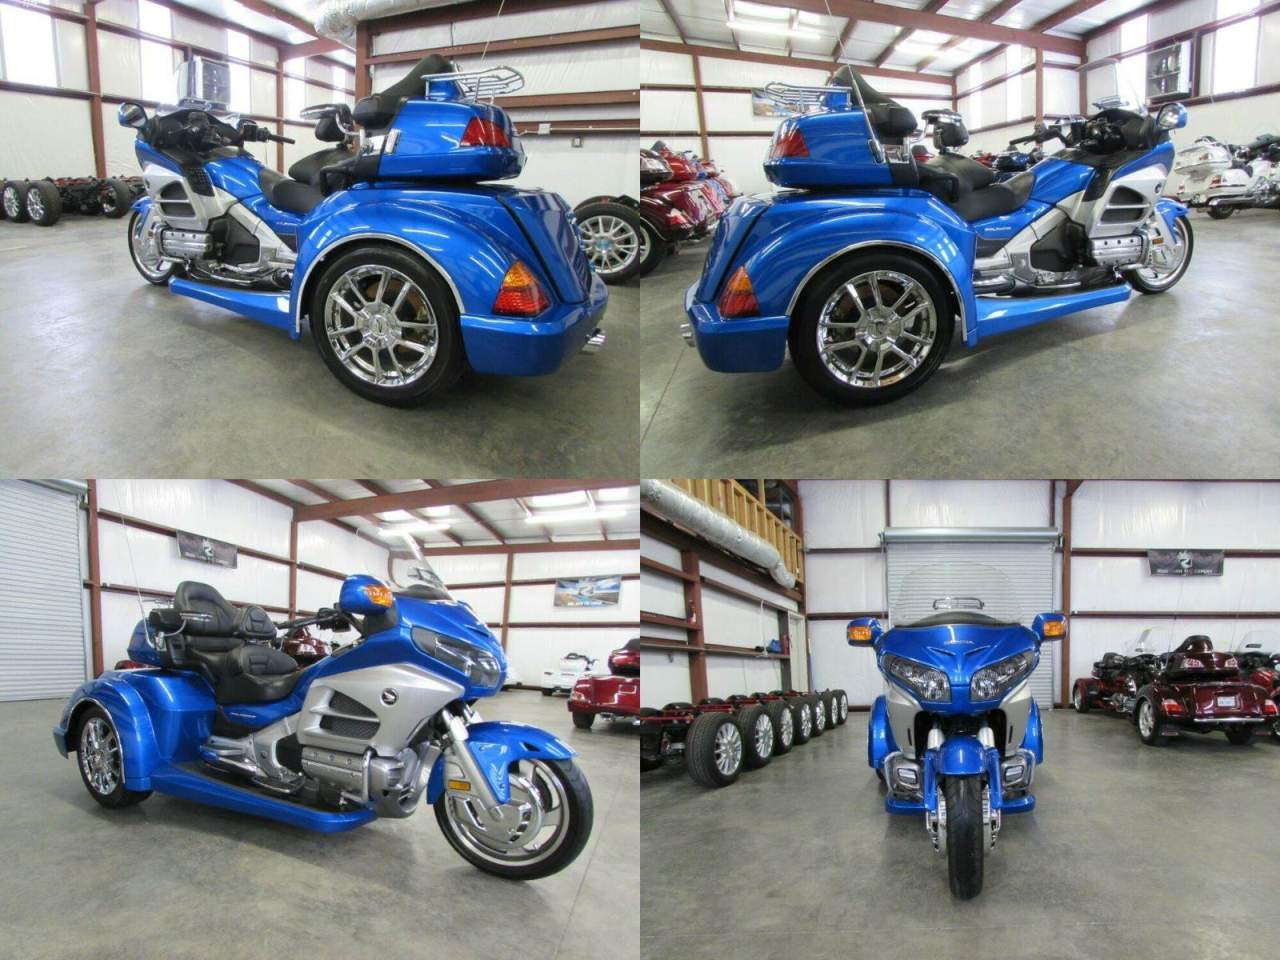 2012 Honda Gold Wing BLUE used for sale near me